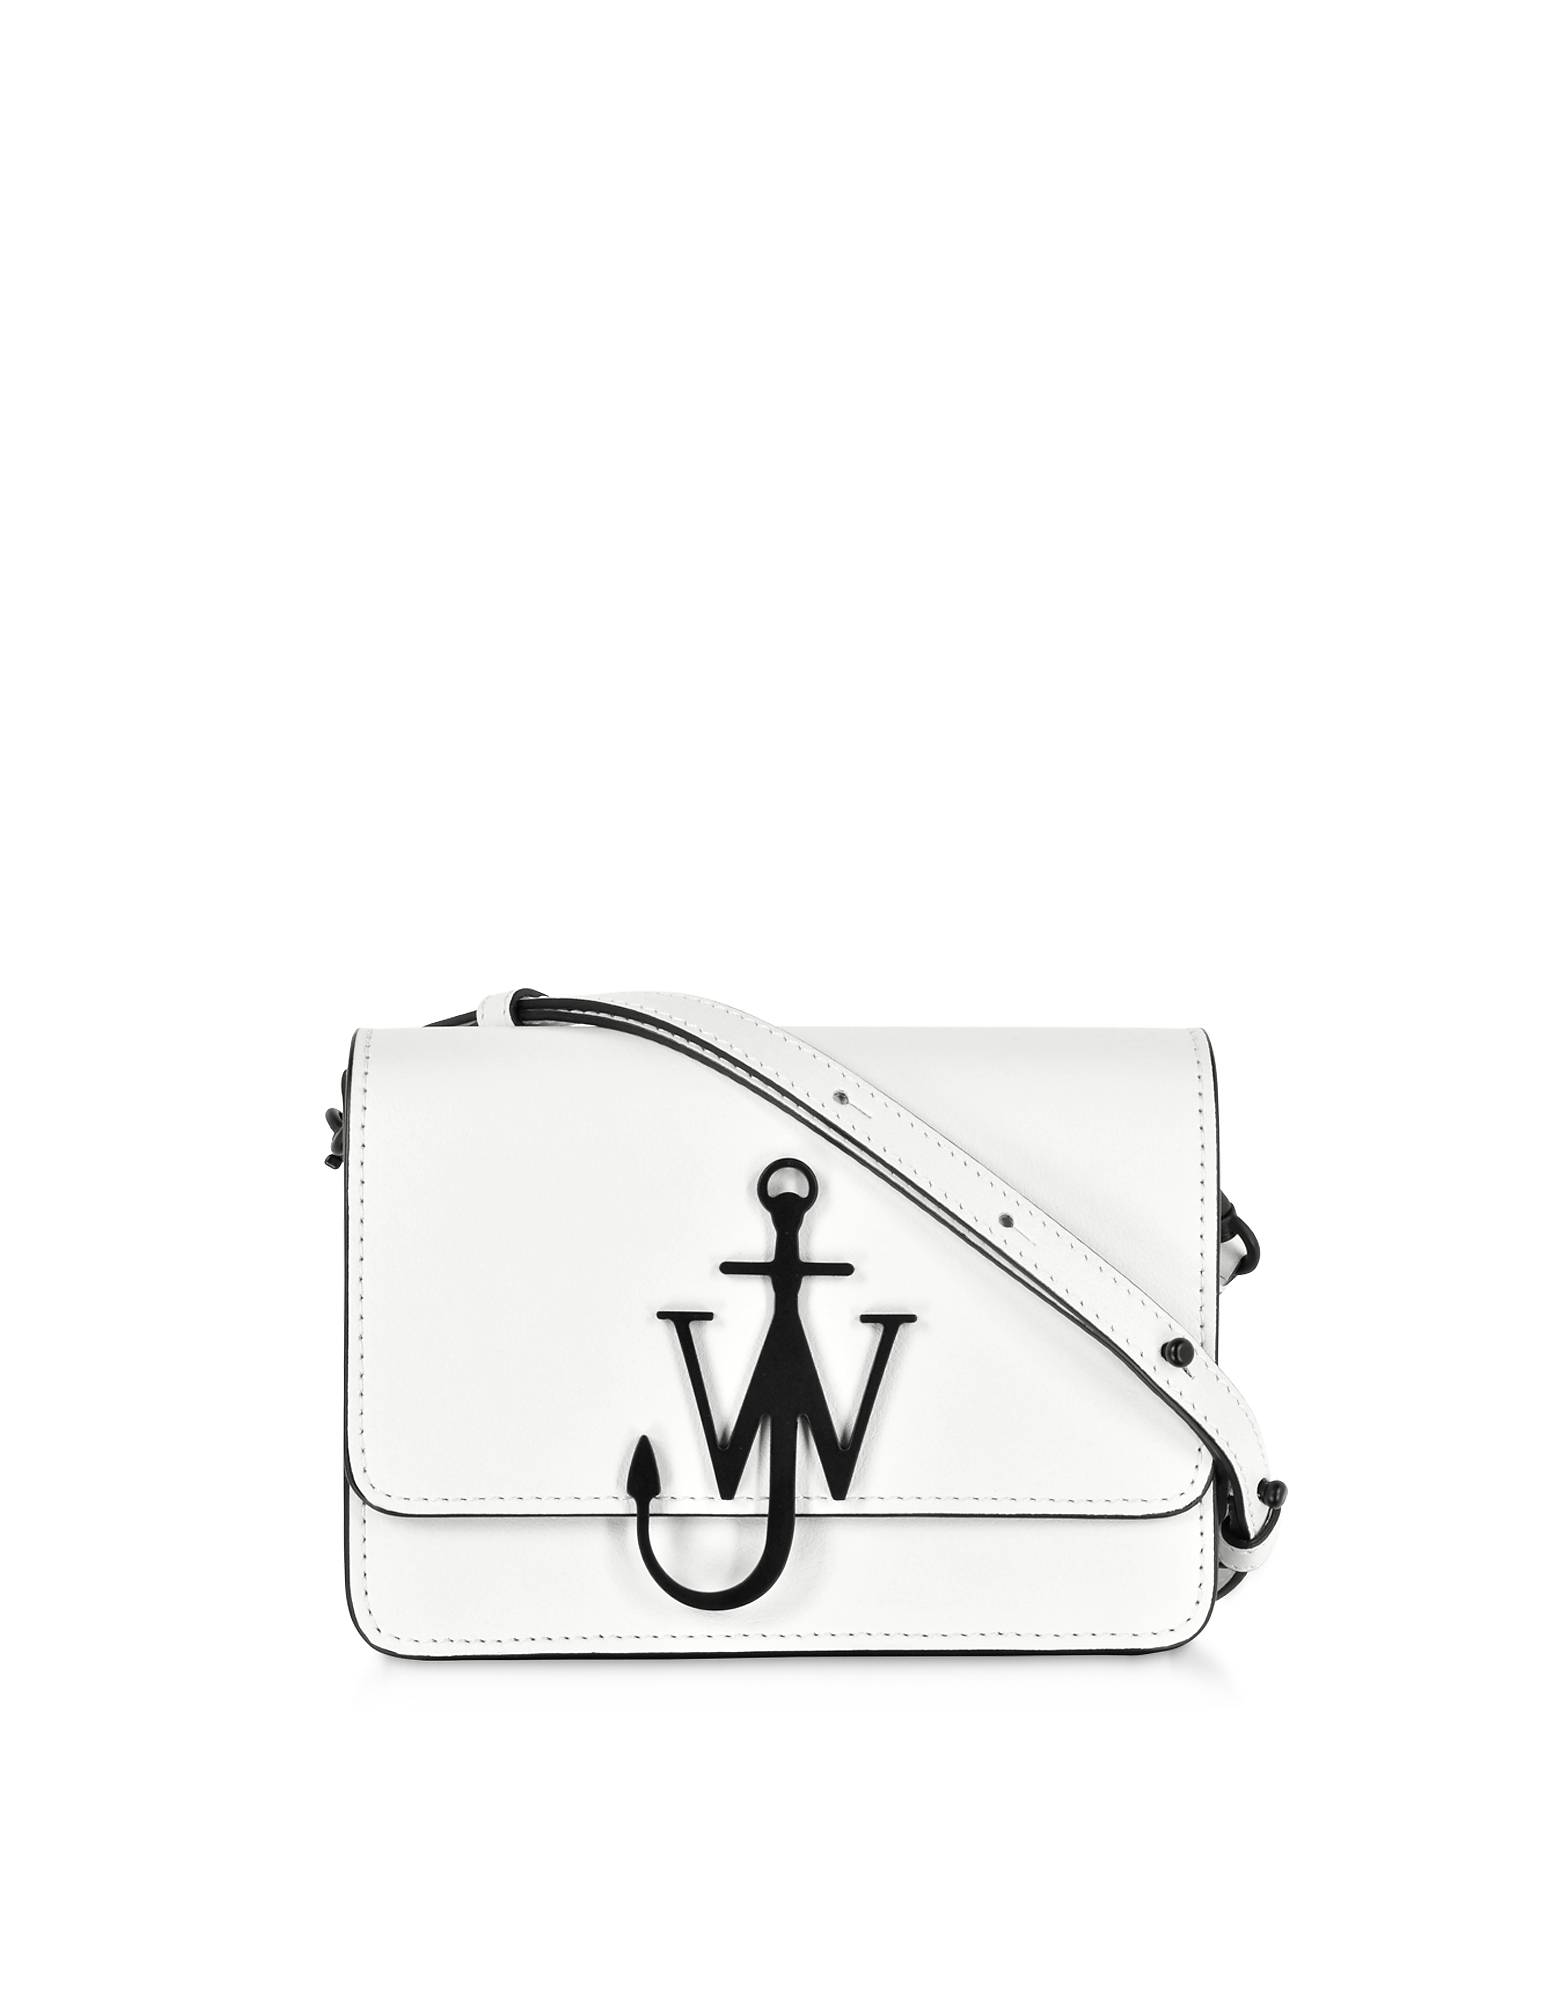 JW Anderson Designer Handbags, White and Black New Mini Logo Purse w/Shoulder Strap (Luggage & Bags) photo